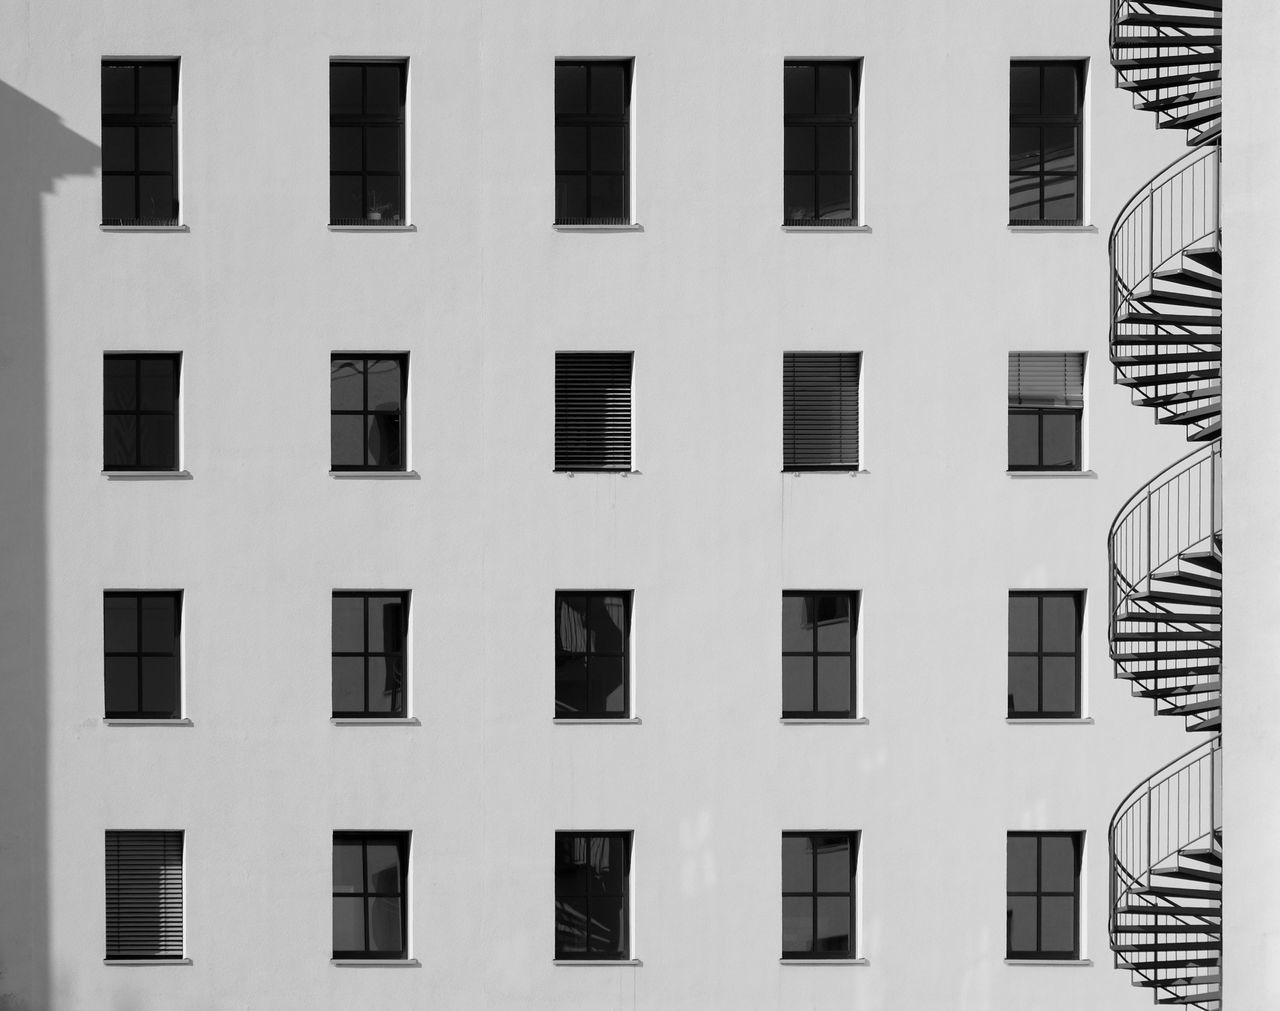 Shadowplayfacade Architecture Architecture_collection Backgrounds Black And White Black&white Blackandwhite Photography Building Built Structure City Cityexplorer Façade In A Row Light And Shadow Minimal Minimalism Minimalist Minimalistic Minimalobsession Monochrome Repetition Shadows & Lights Side By Side Fine Art Photography The Architect - 2016 EyeEm Awards Urban Geometry Minimalist Architecture